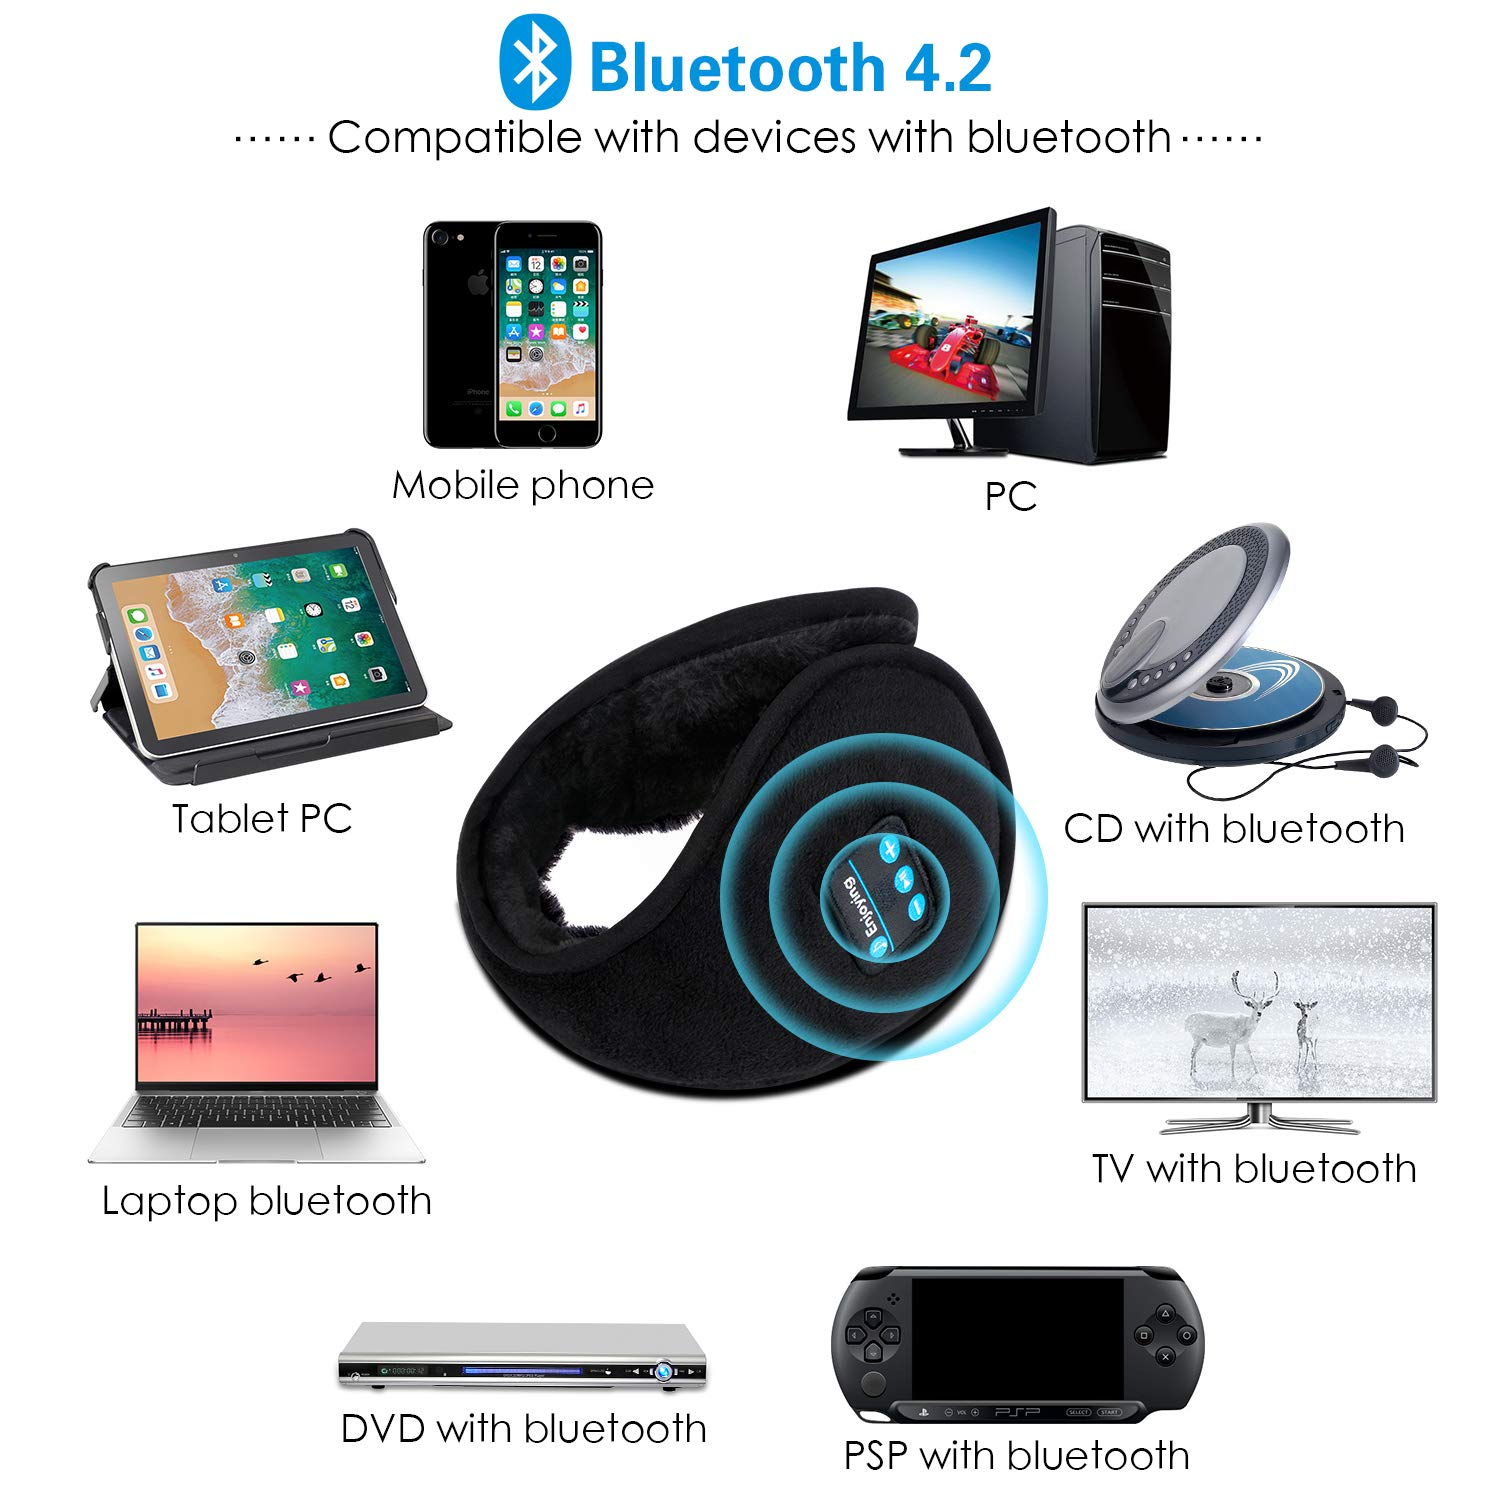 ink-topoint Bluetooth Earmuffs Headphones, Wireless HD Stereo Music Ear Warmer, Handfree Headset with Built-in Speaker Unisex Winter Ear Muffs for Walking,Running,Skiing,Indoor Outdoors Activities